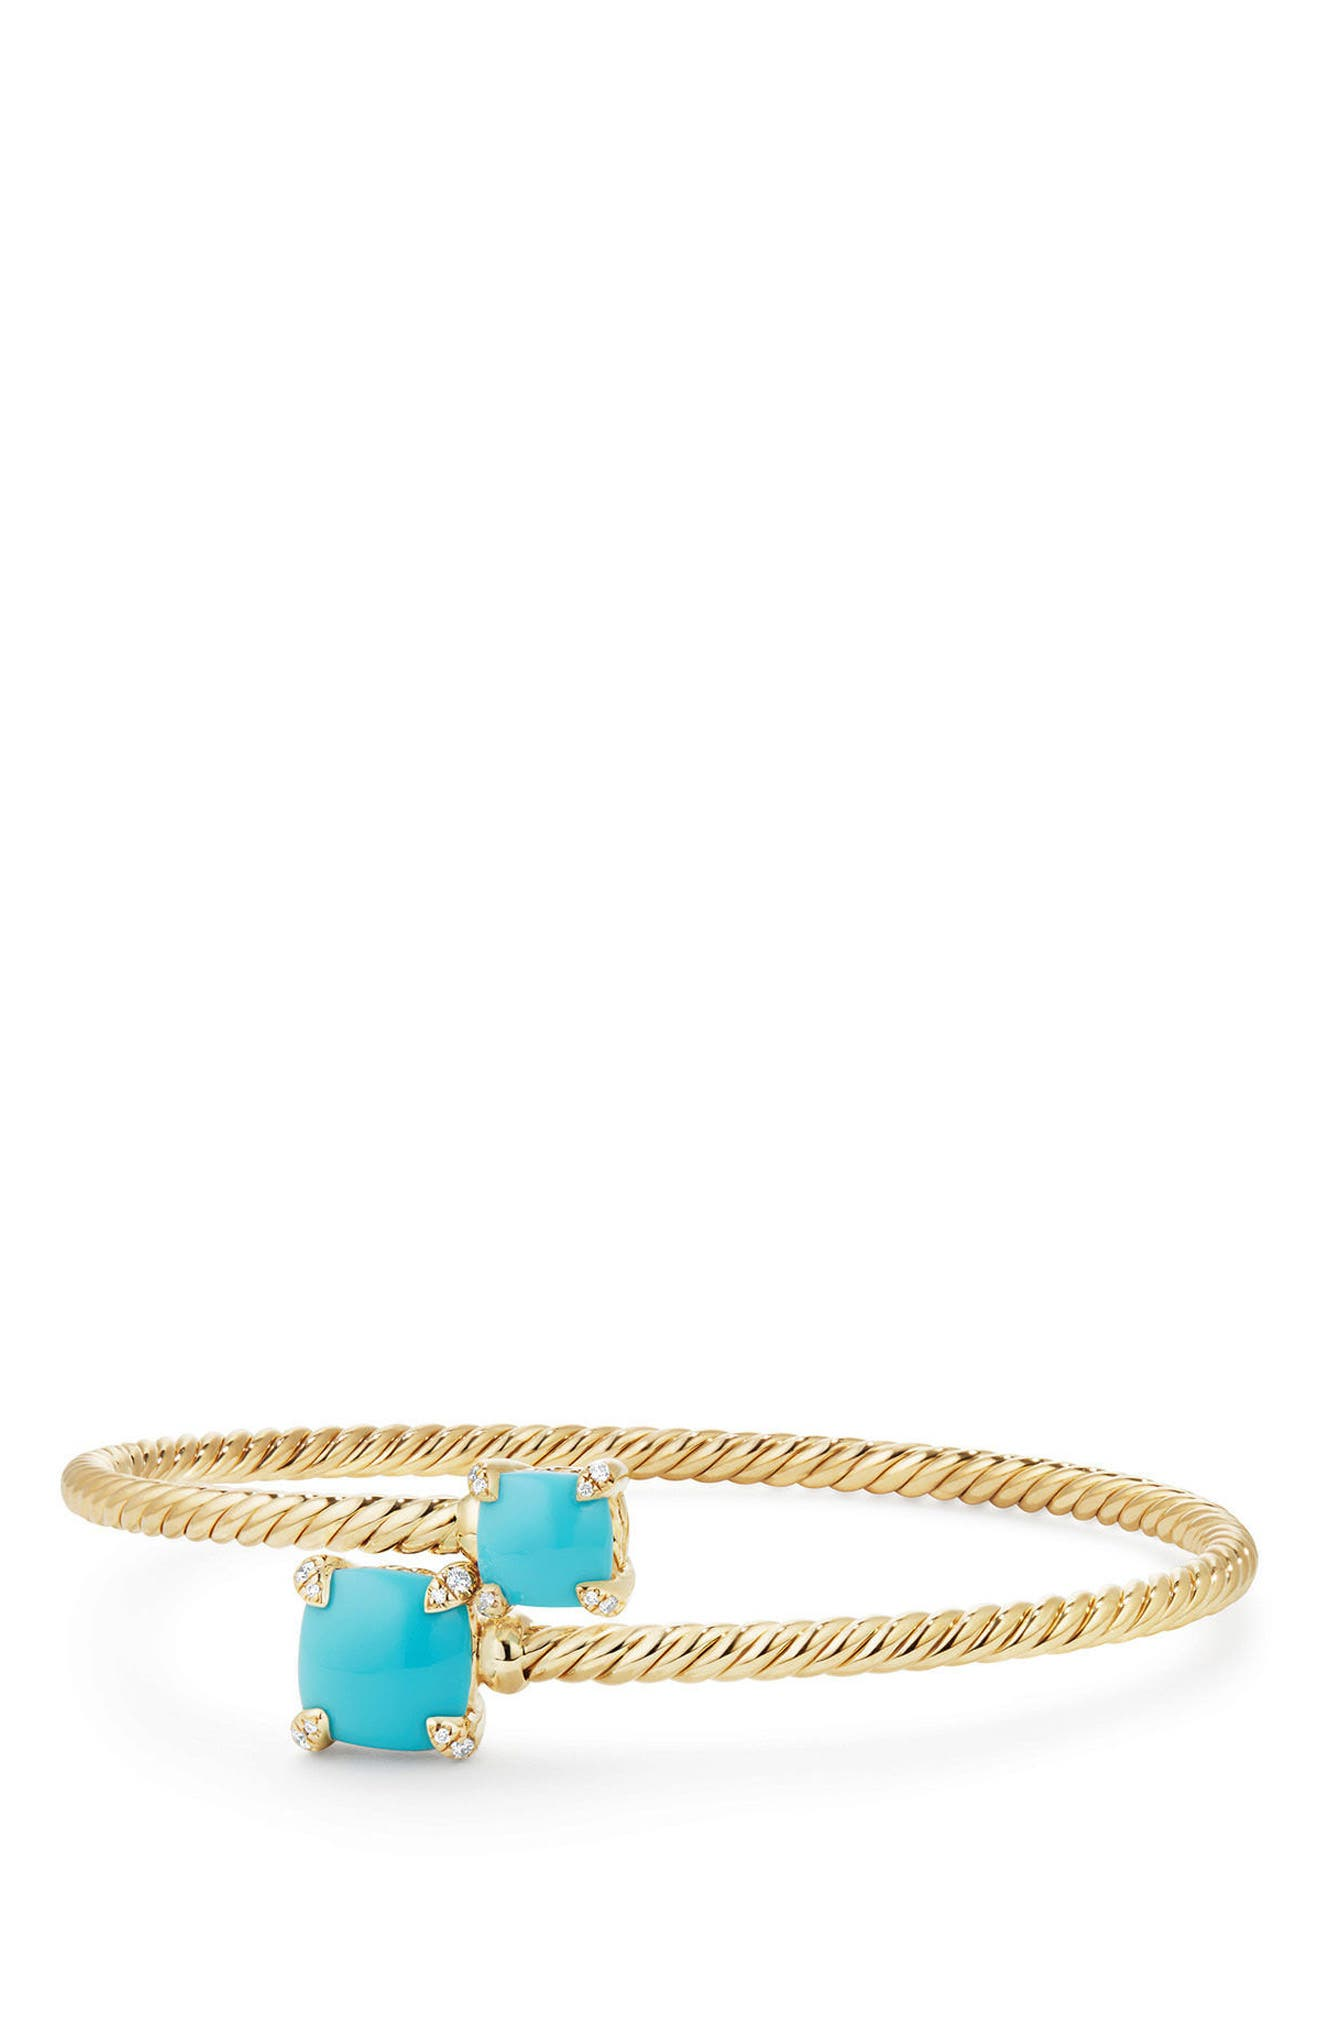 Main Image - David Yurman Châtelaine Bypass Bracelet with Semiprecious Stone & Diamonds in 18K Gold